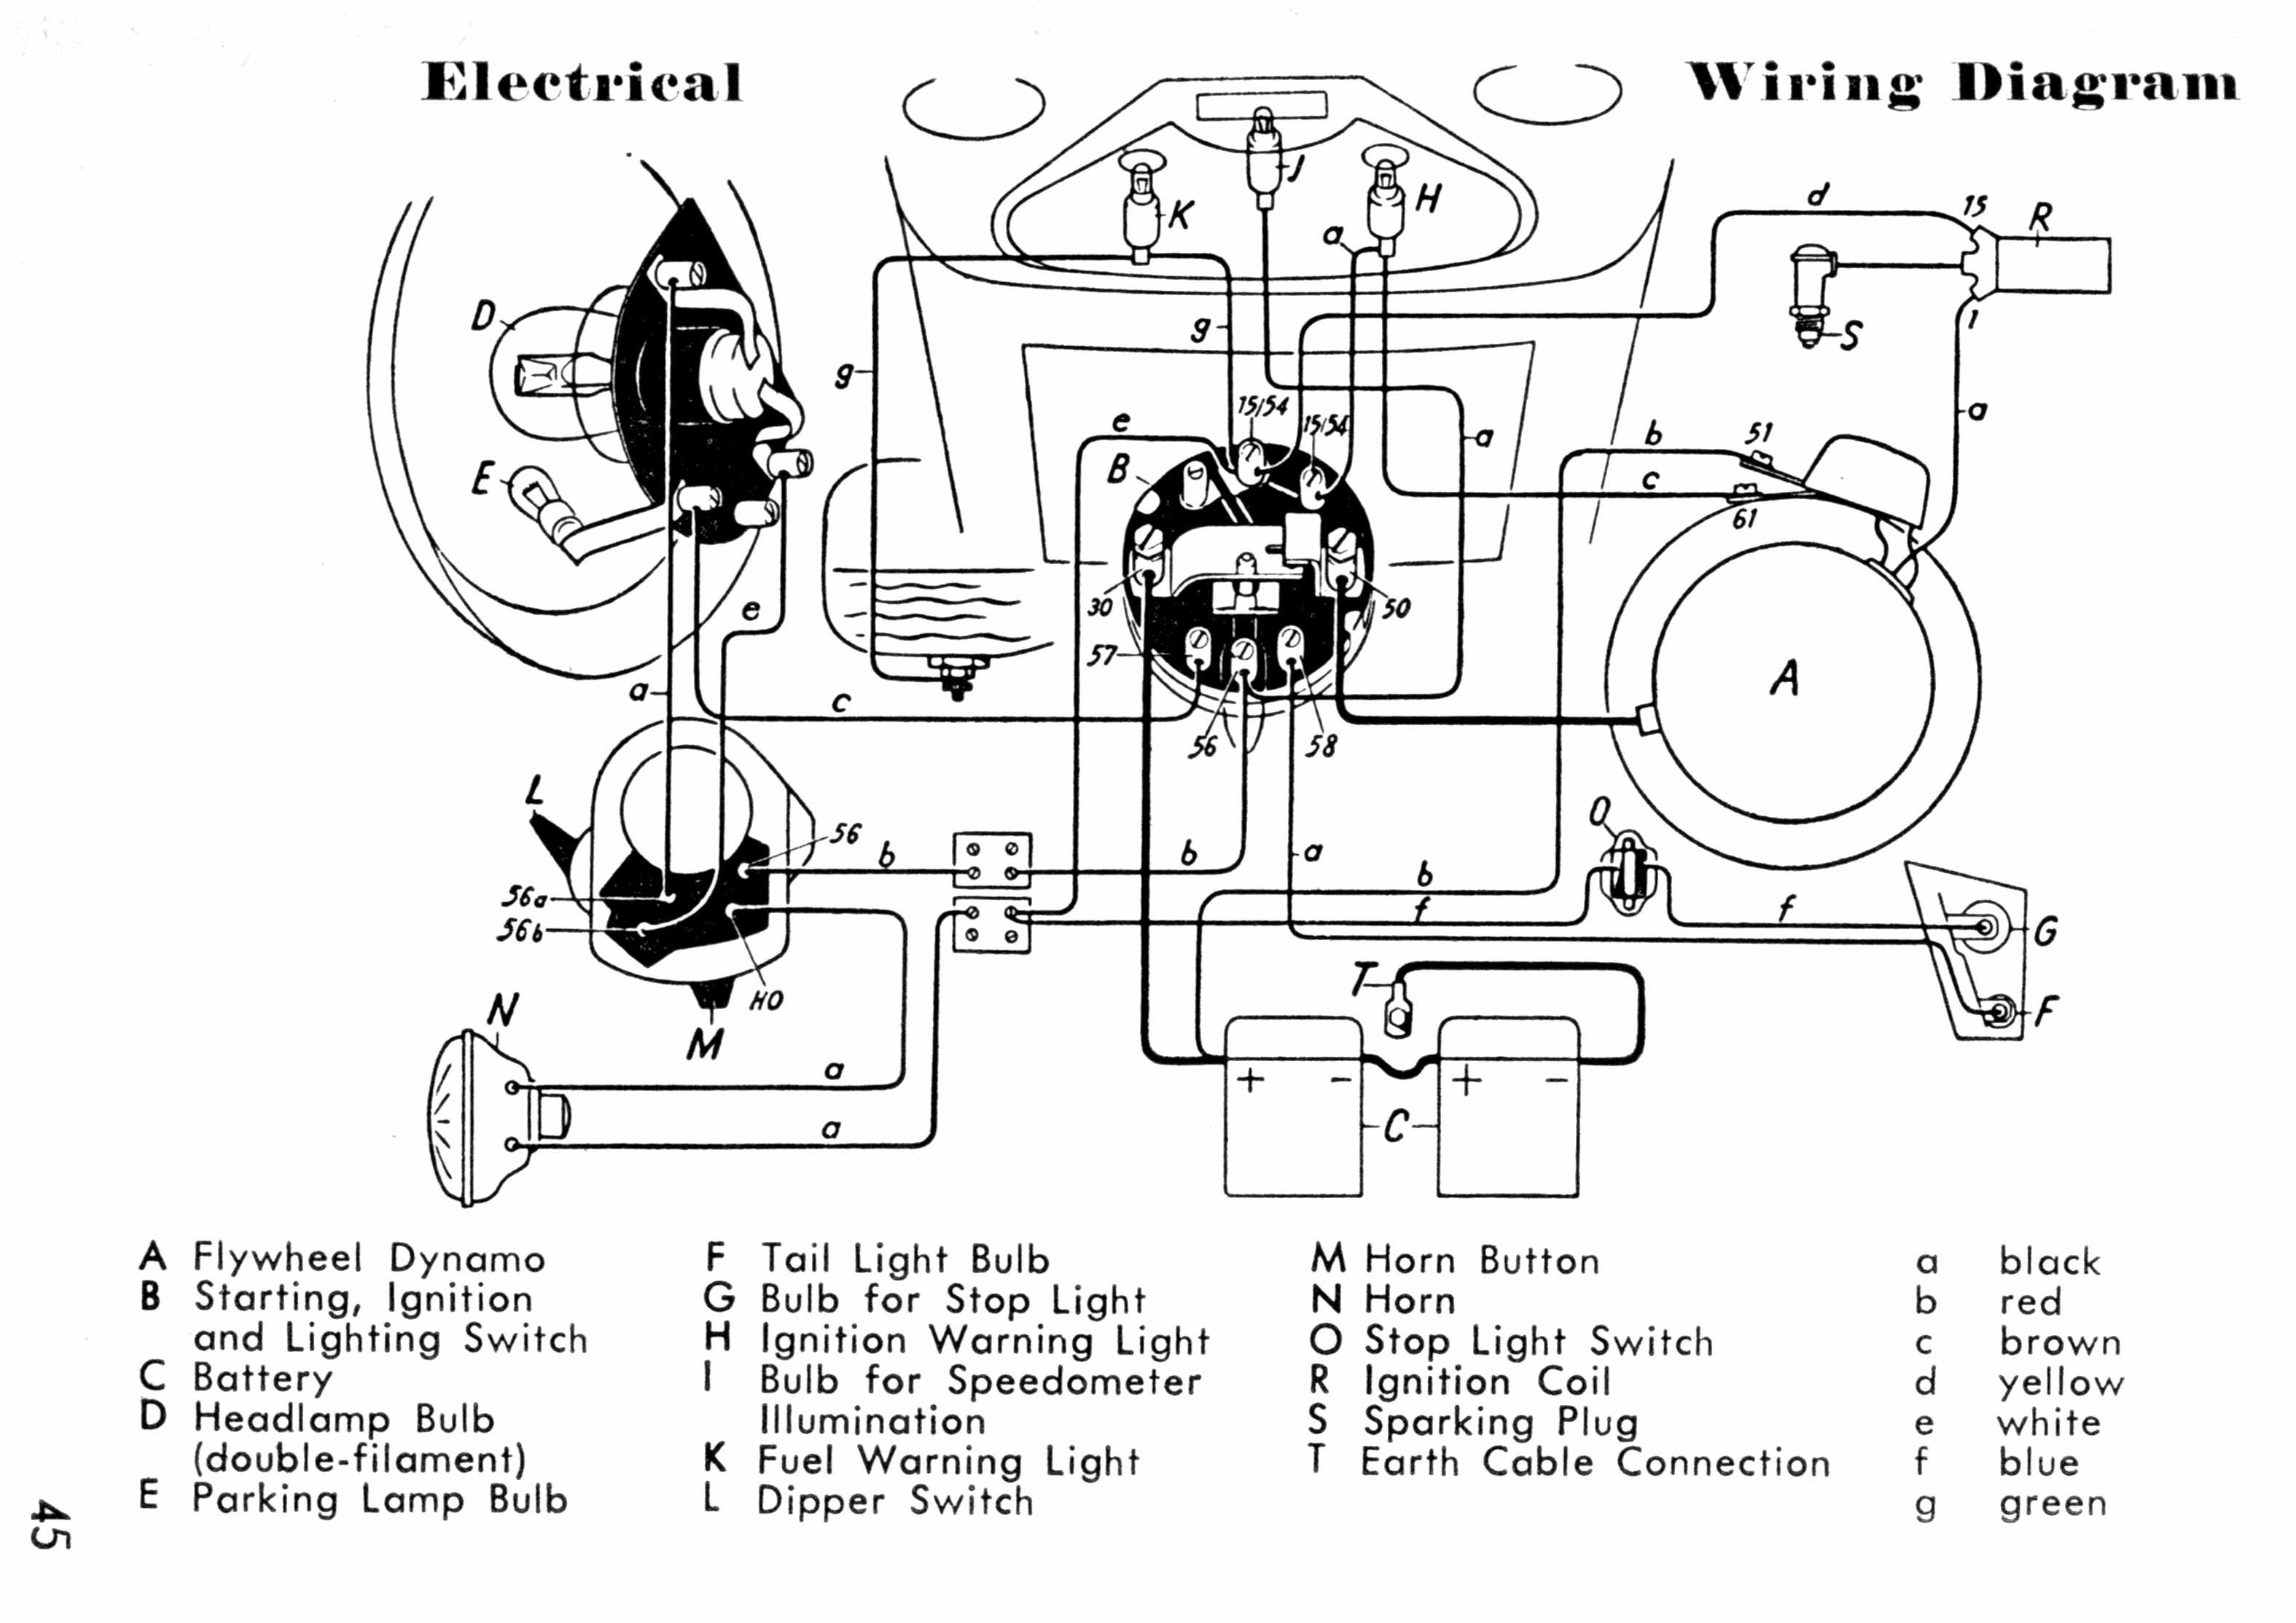 24 Volt Wiring Diagram Electric Dirt Bike